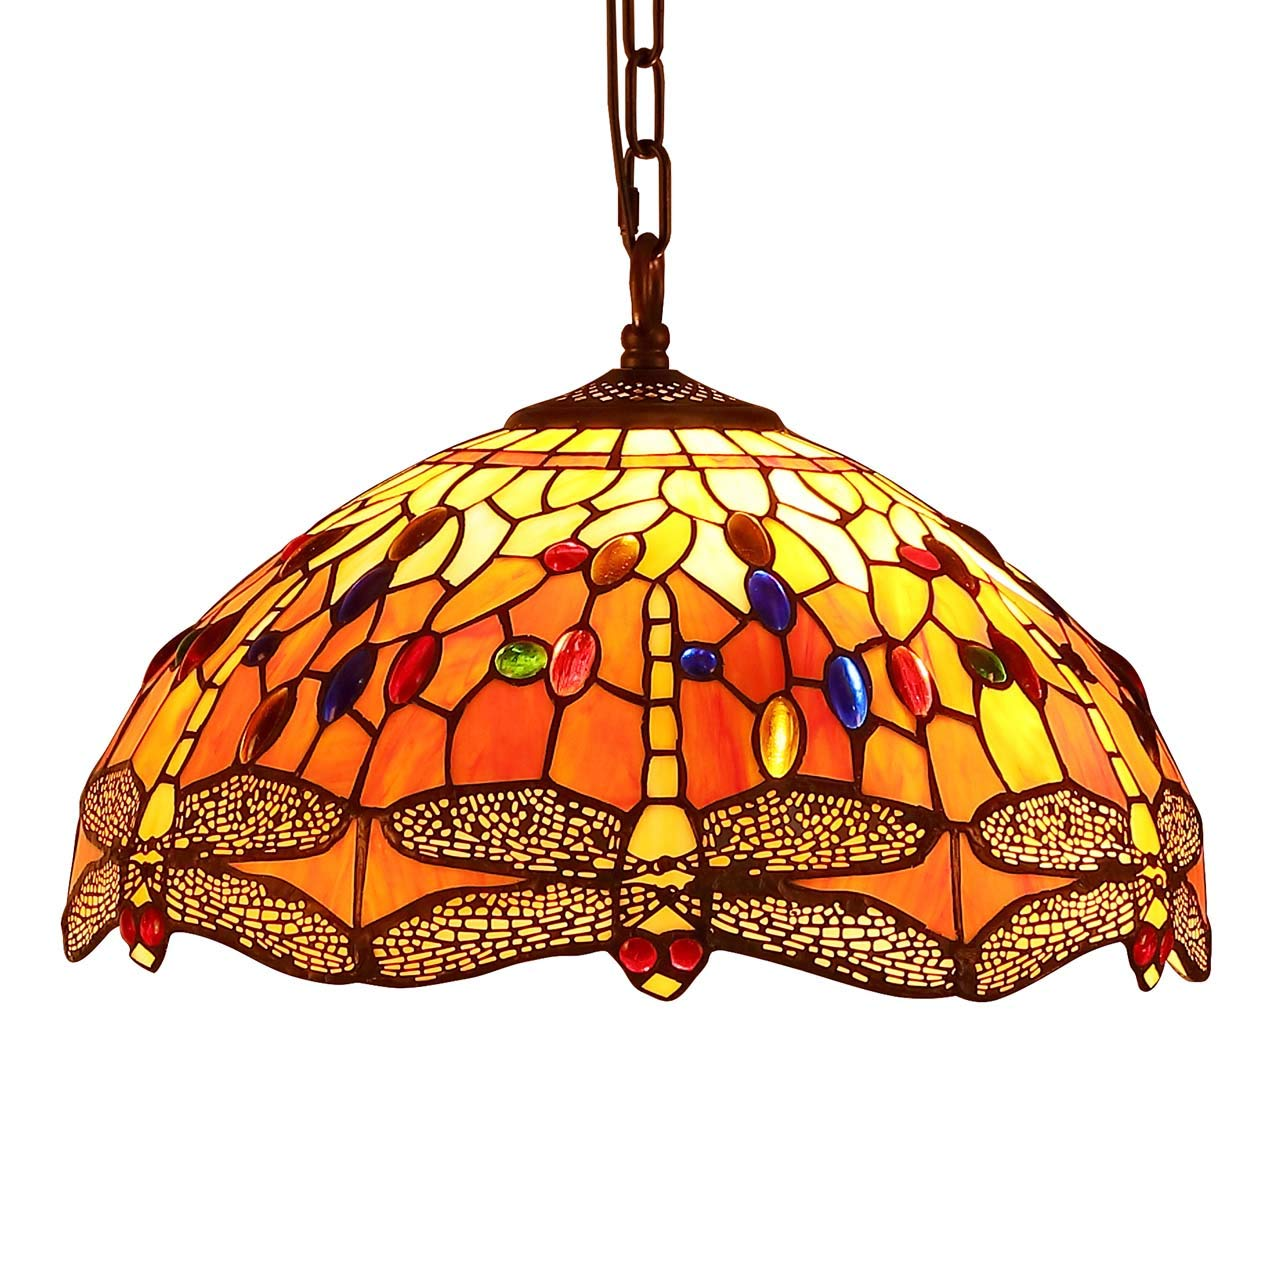 Bieye L30715 Dragonfly Tiffany Style Stained Glass Ceiling Pendant Light With 16 Inches Wide Handmade Lamp Shade Orange Buy Online In Aruba At Aruba Desertcart Com Productid 147004311